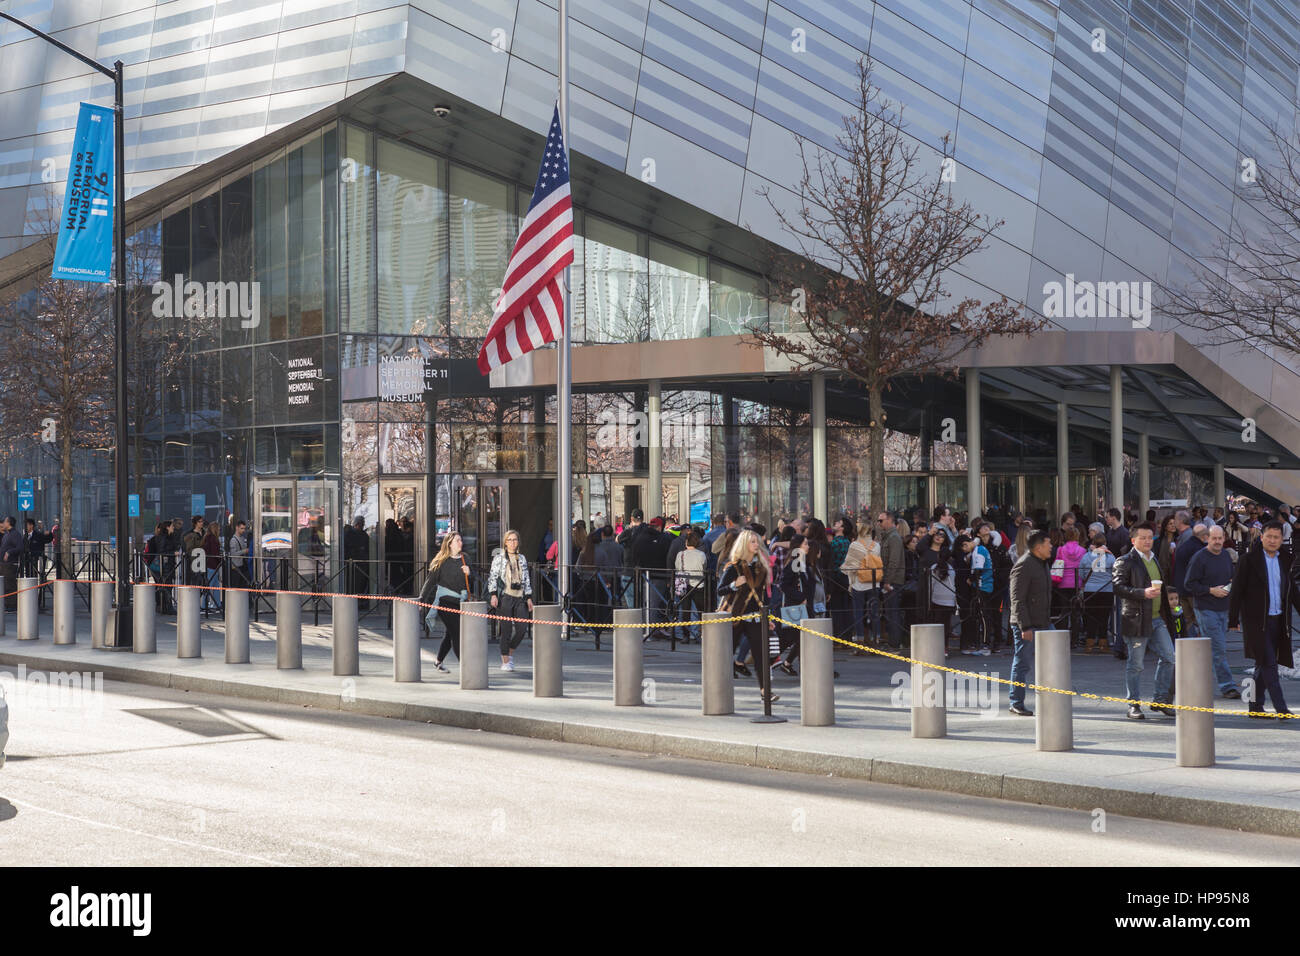 People wait in line to enter the National September 11 Memorial Museum in New York City. - Stock Image